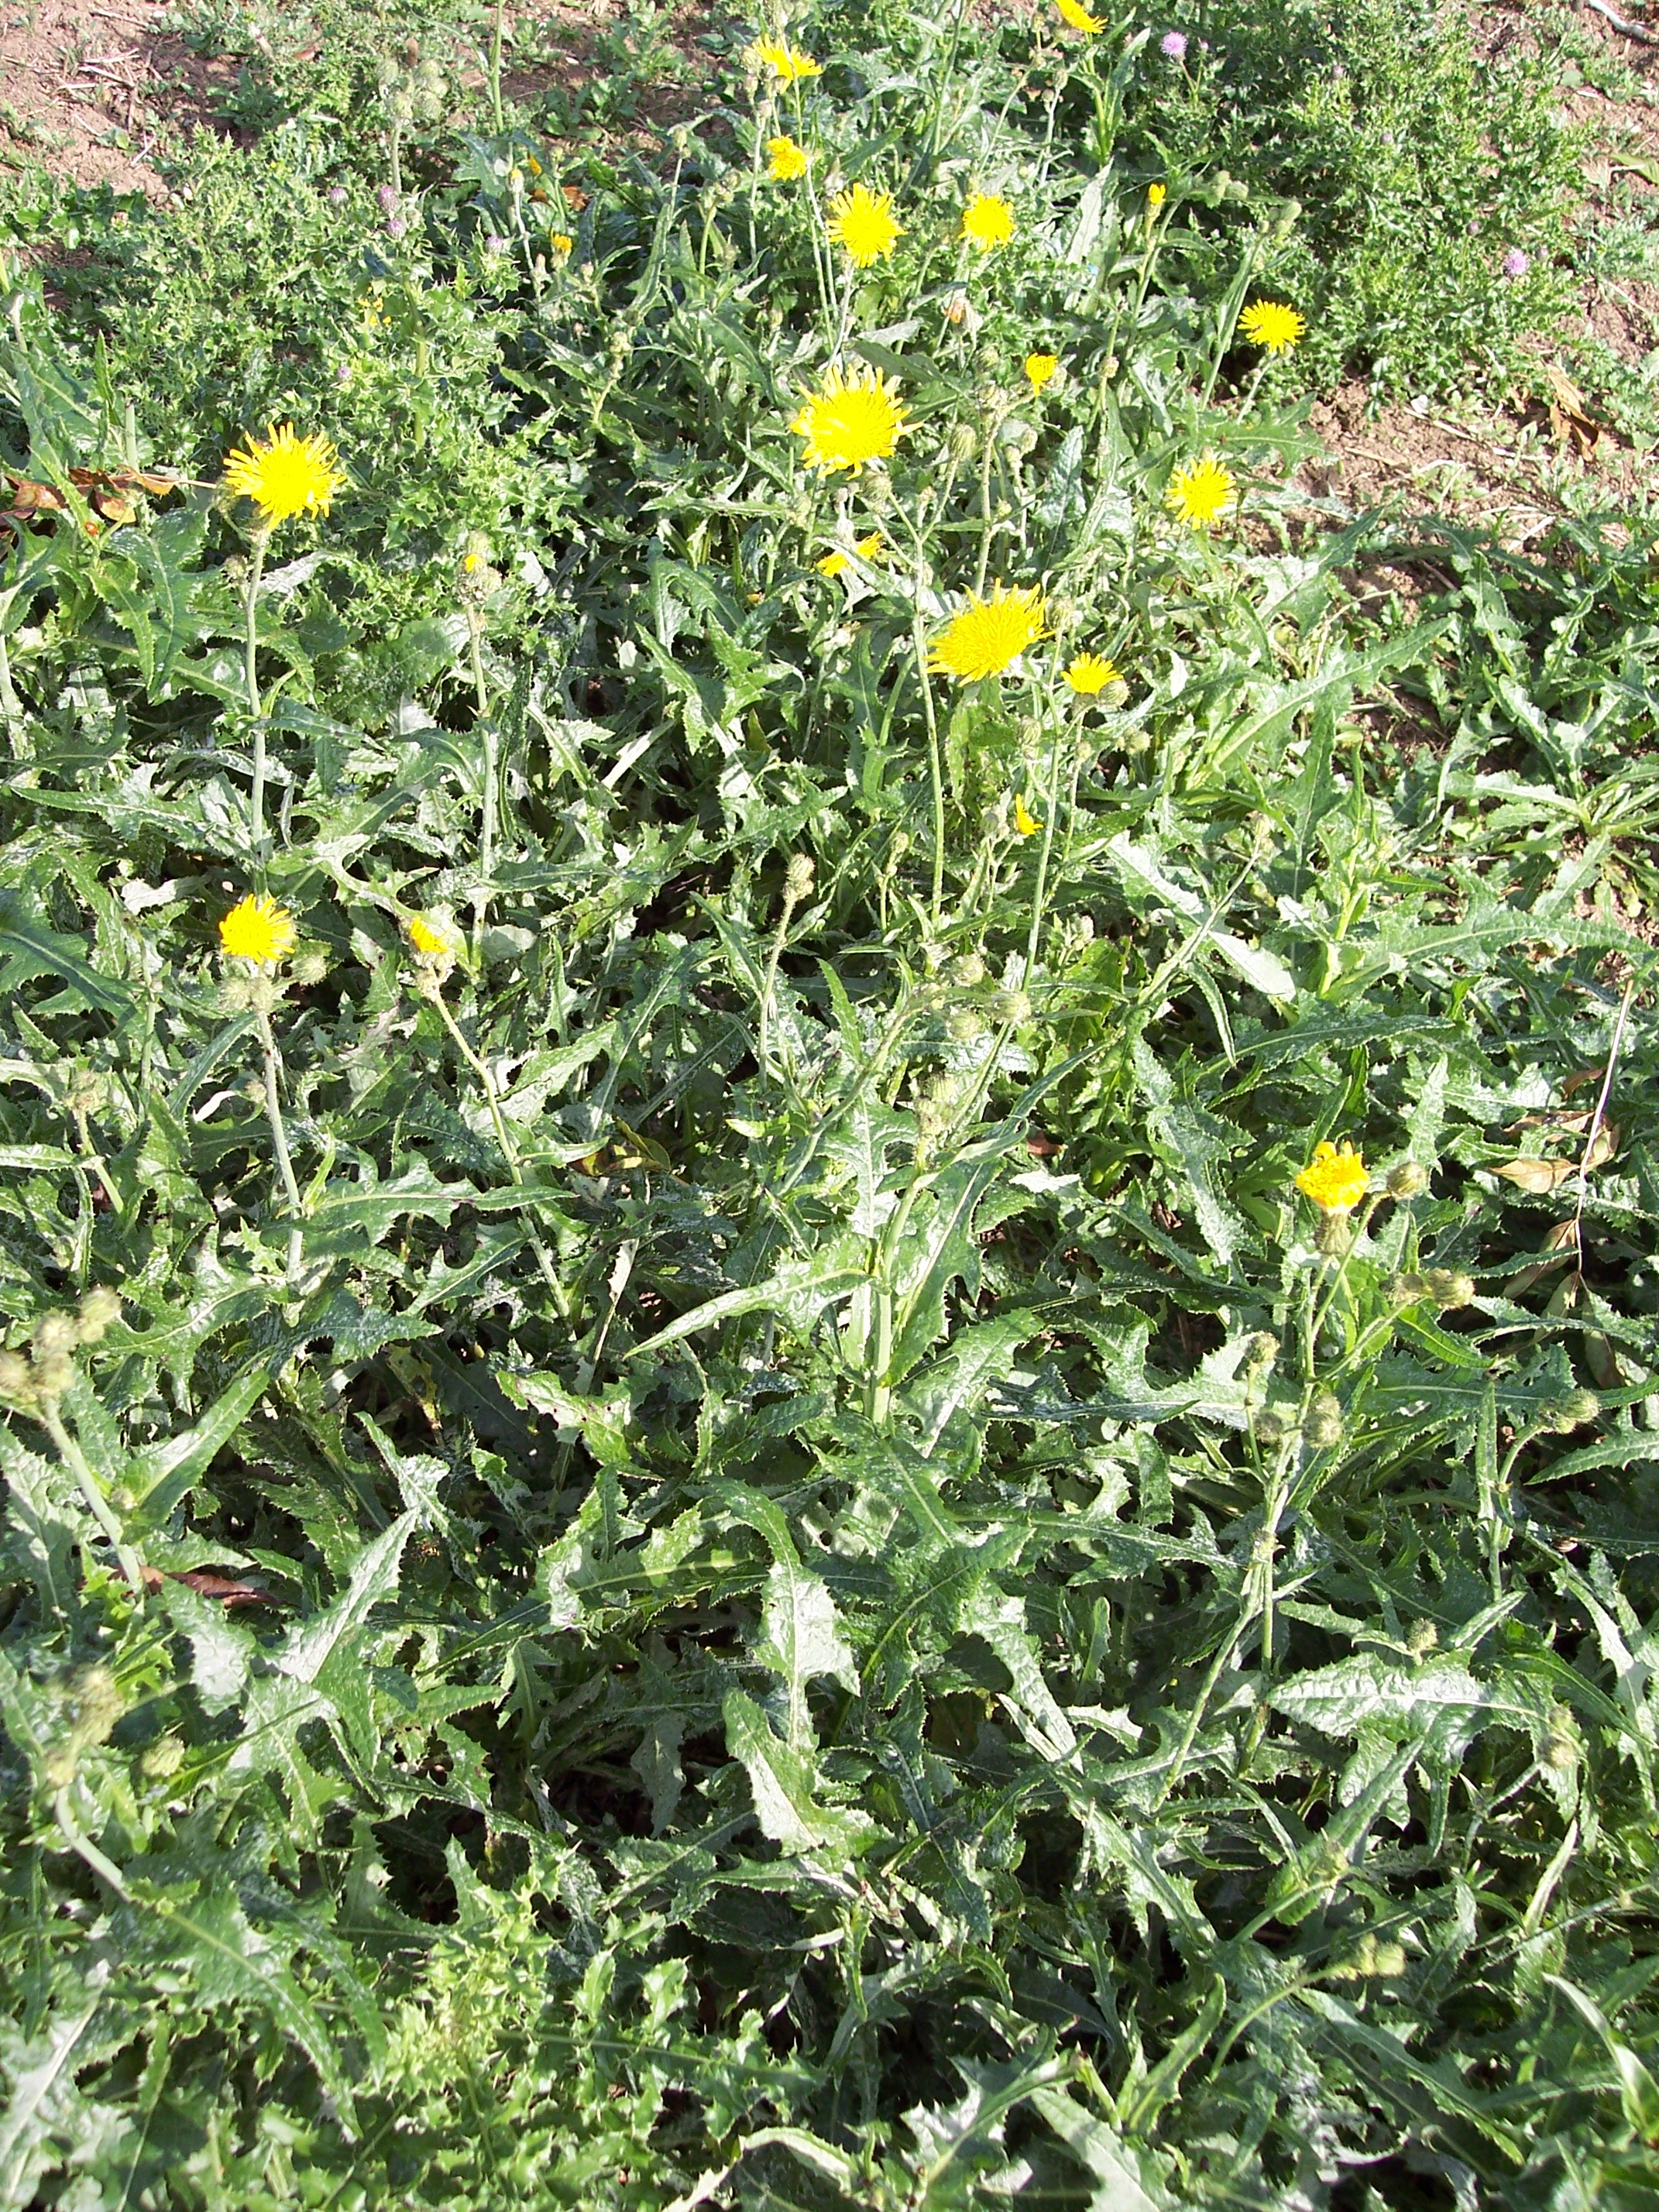 The Perennial Sow-thistle has bright yellow florets similar to the dandelion but these are held on branched stalks rather than singularly one per stem. The dark green leaves are also edged with fine spines. The involucres (or bracts) below the florets are covered in sticky gland-tipped hairs. Sow-th...